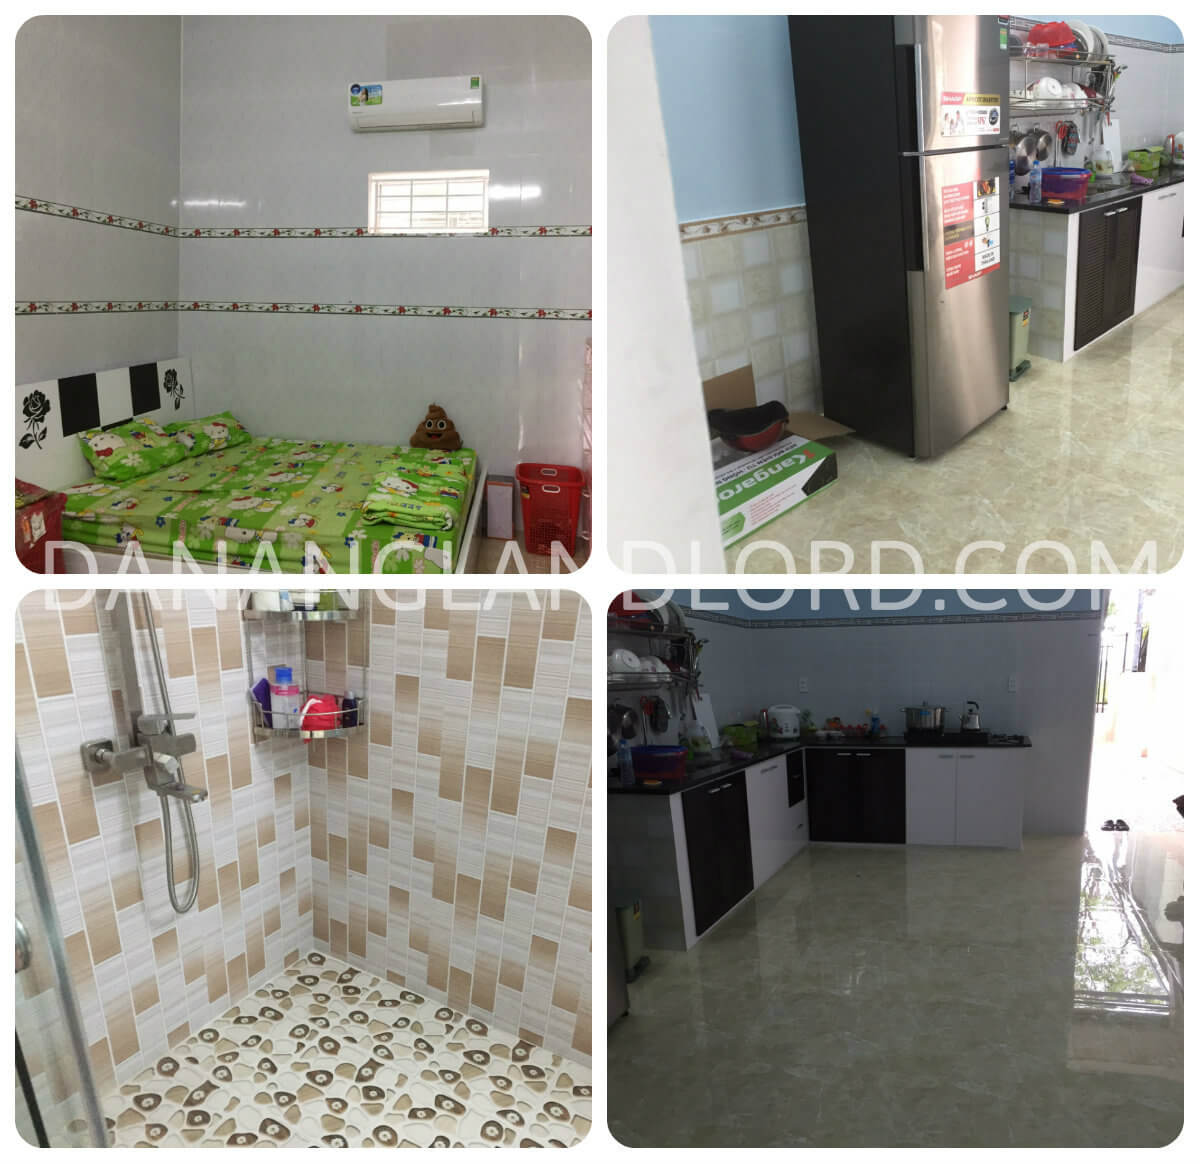 1 bedroom house for rent, close to Han River –  DK85